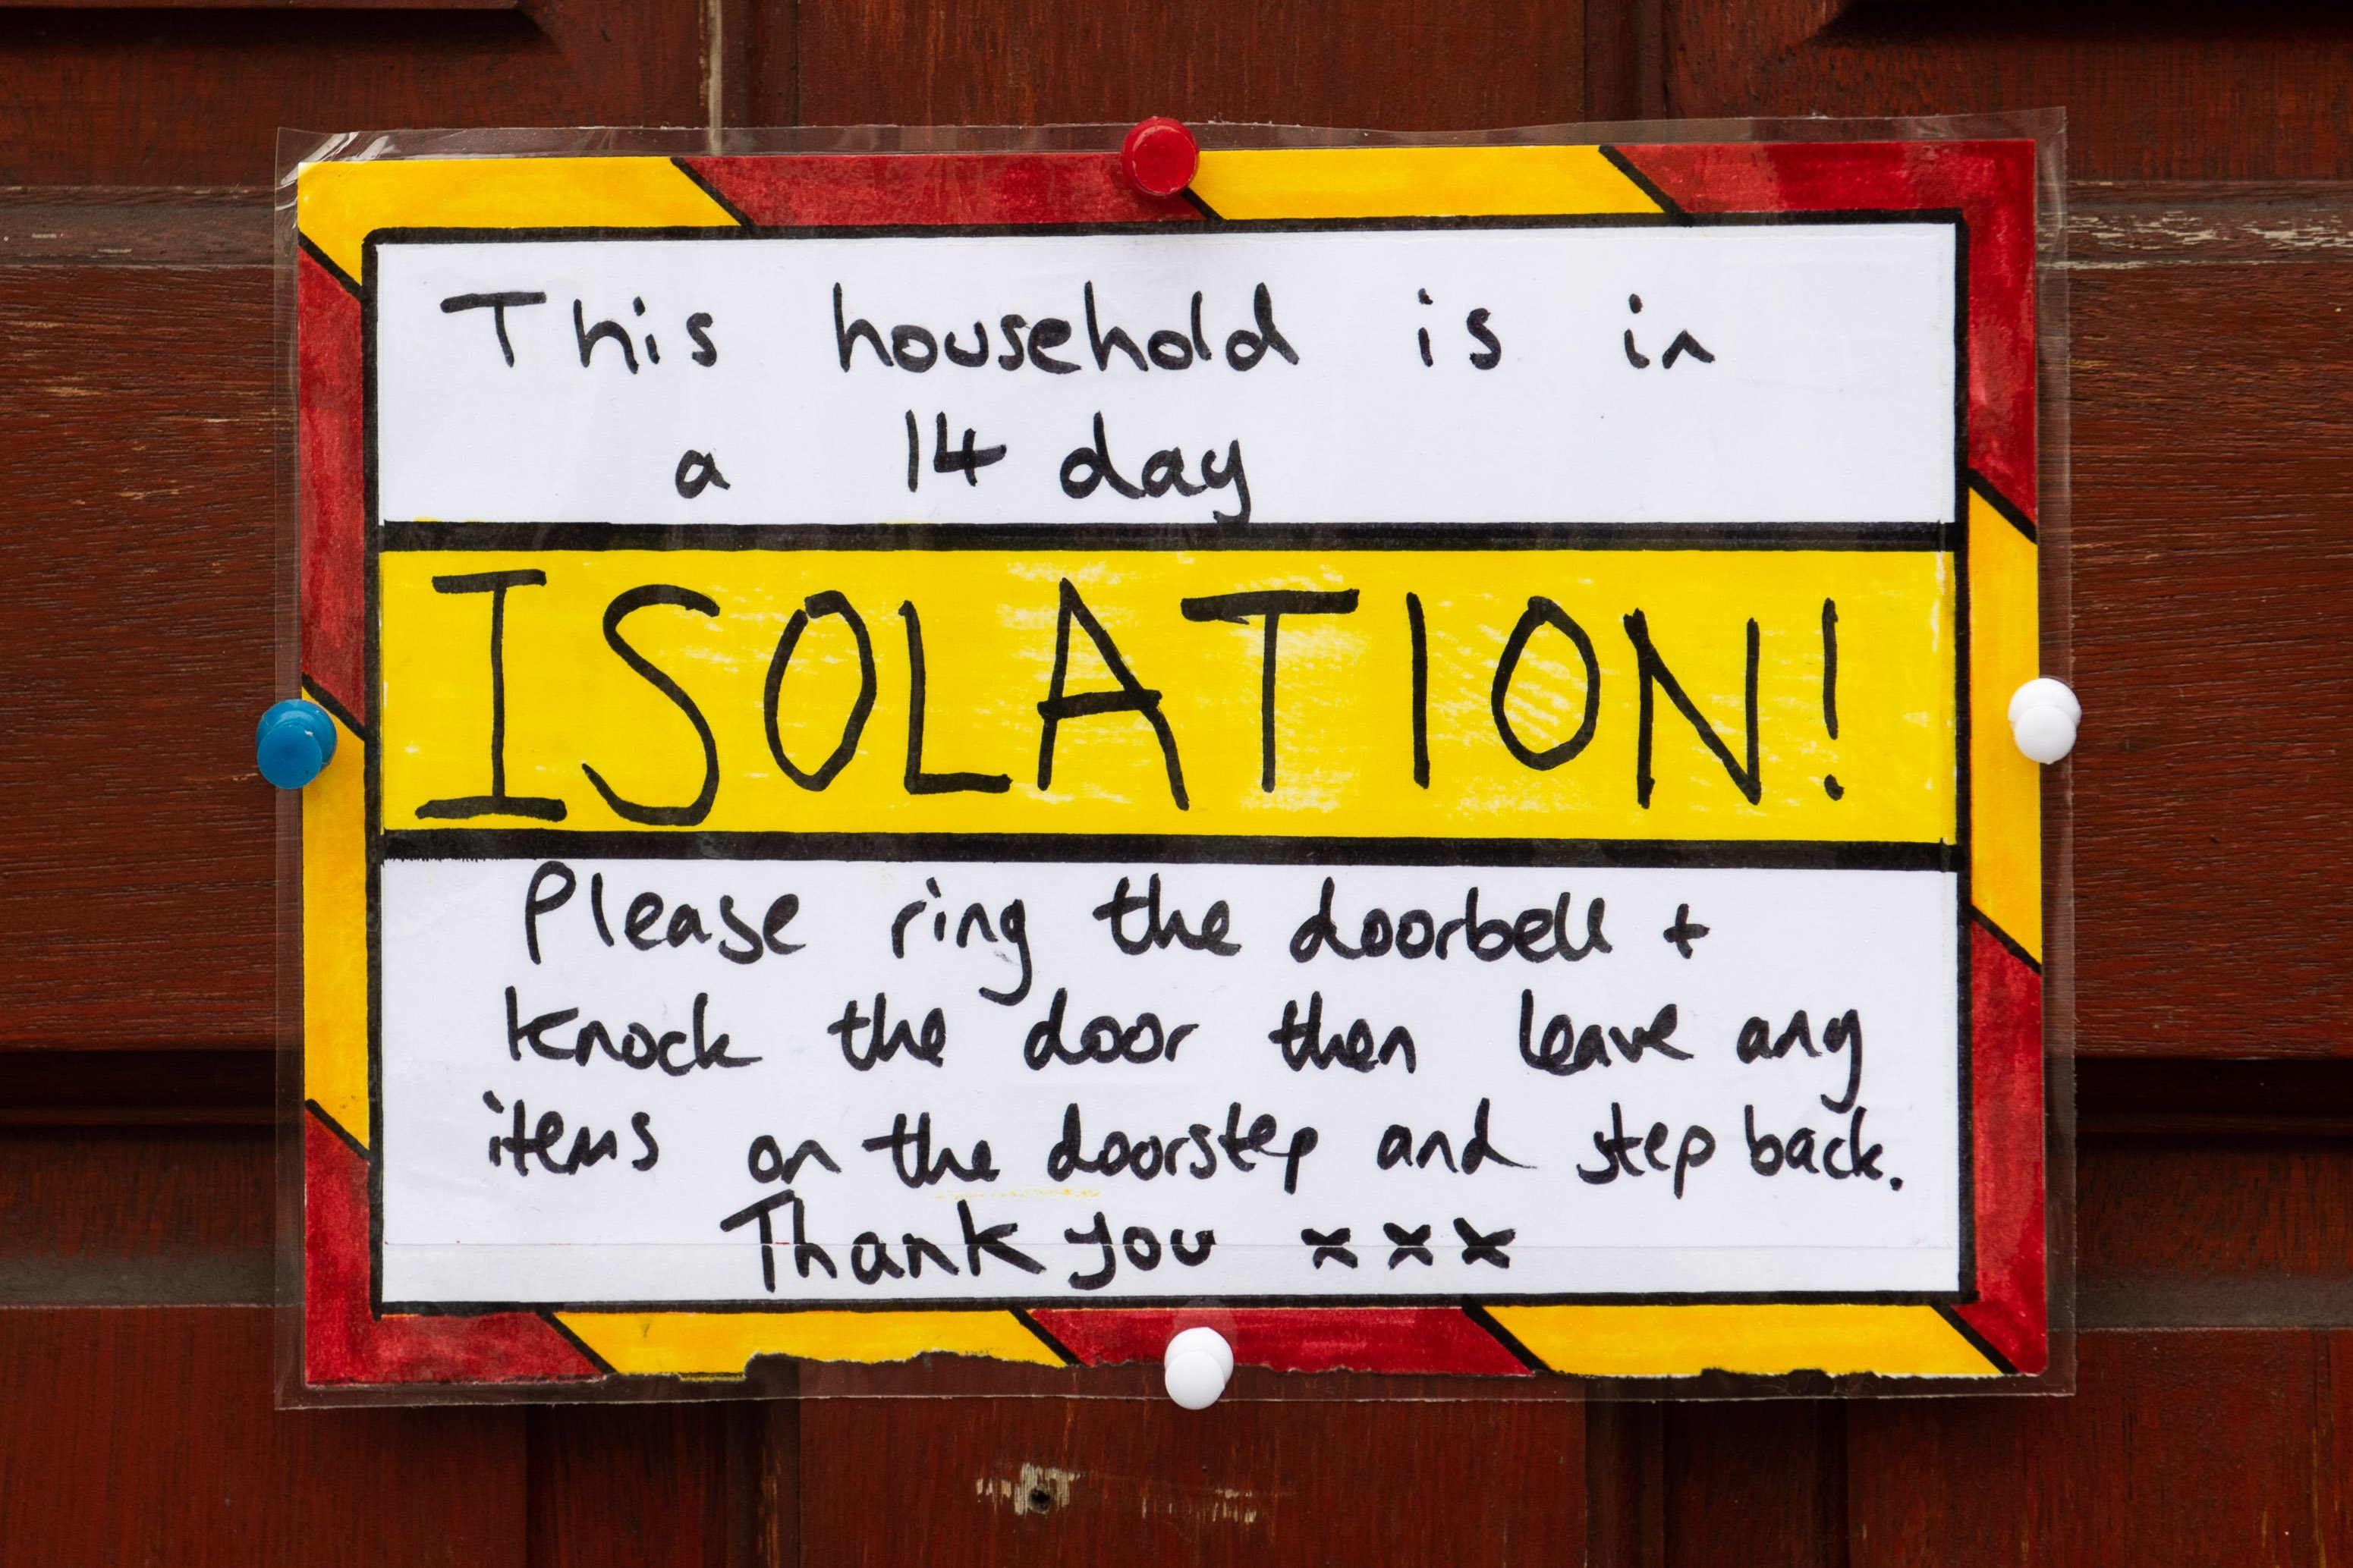 A sign on the door of a residential property where the household are in a 14 day isolation in accordance with new government guidelines on March 18, 2020 in Cardiff, United Kingdom. | Source: Getty Images